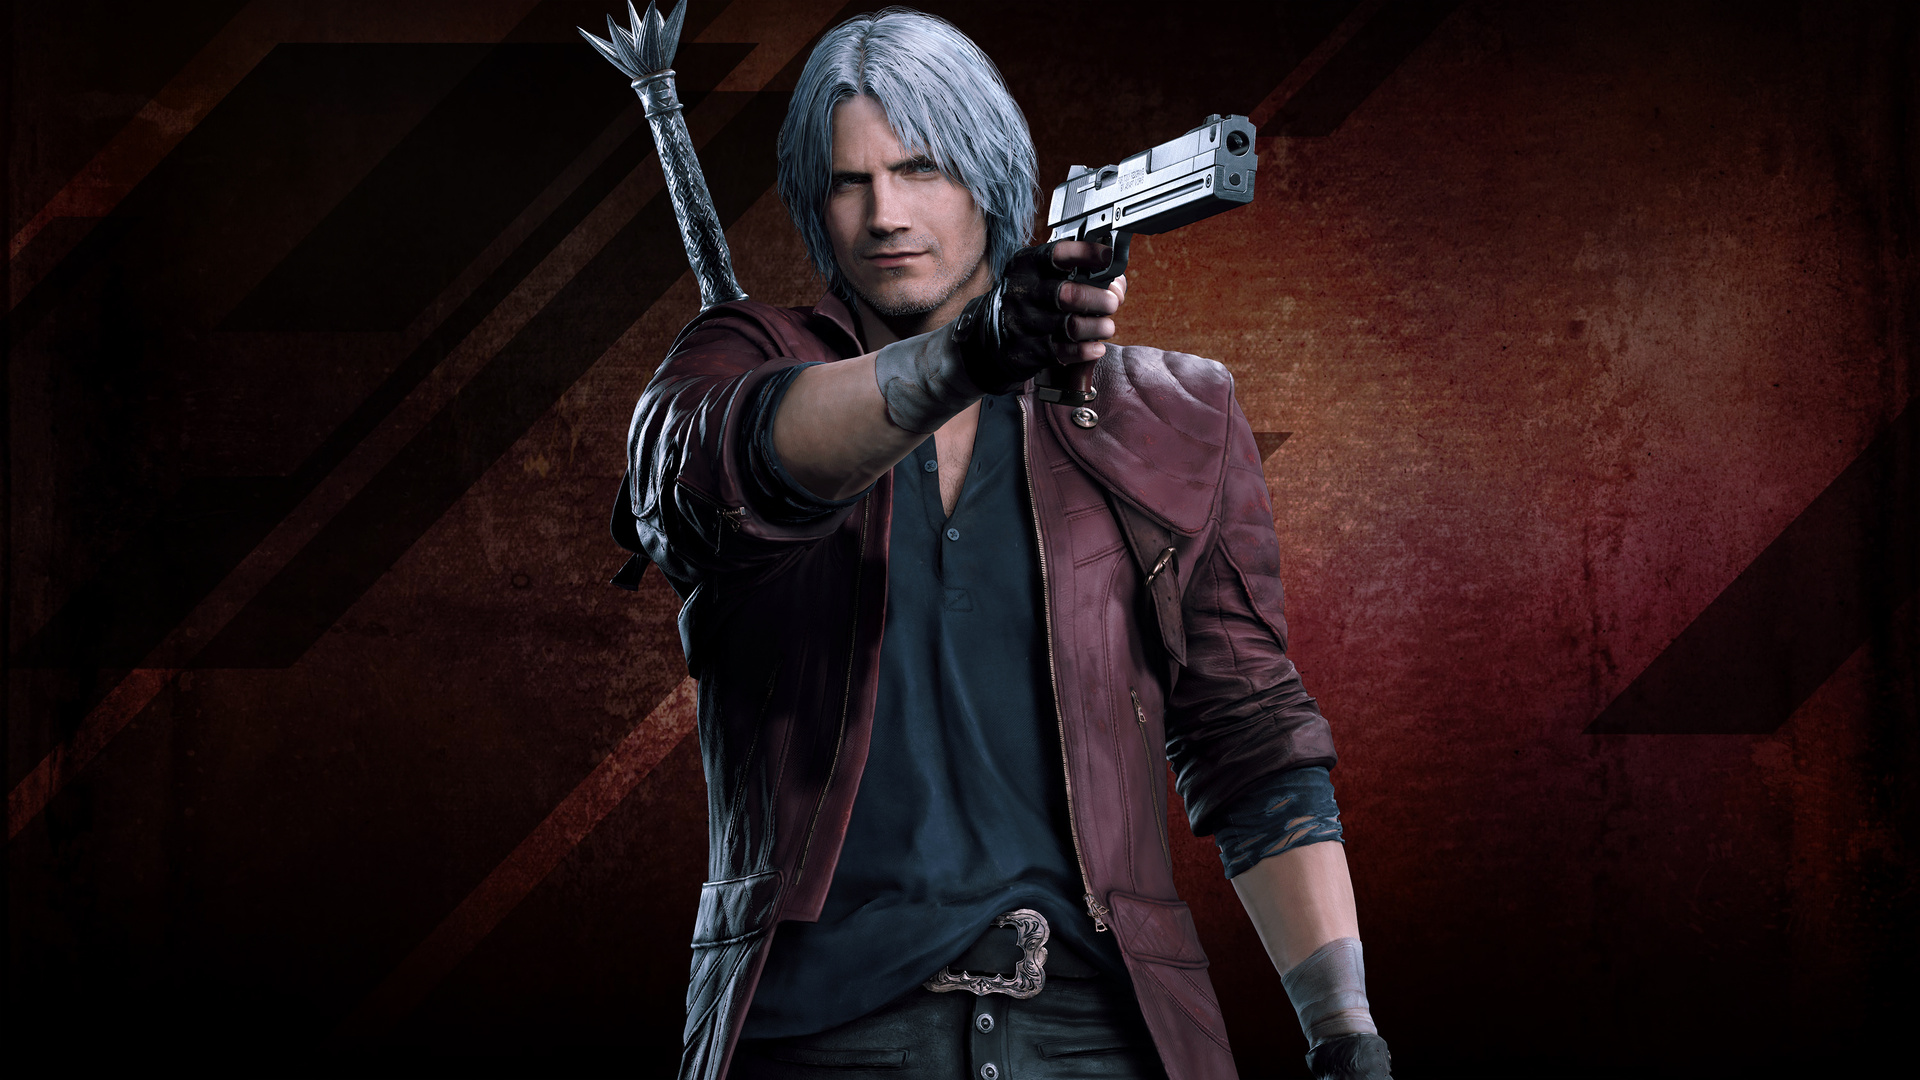 1920x1080 Dante Devil May Cry 4k Laptop Full Hd 1080p Hd 4k